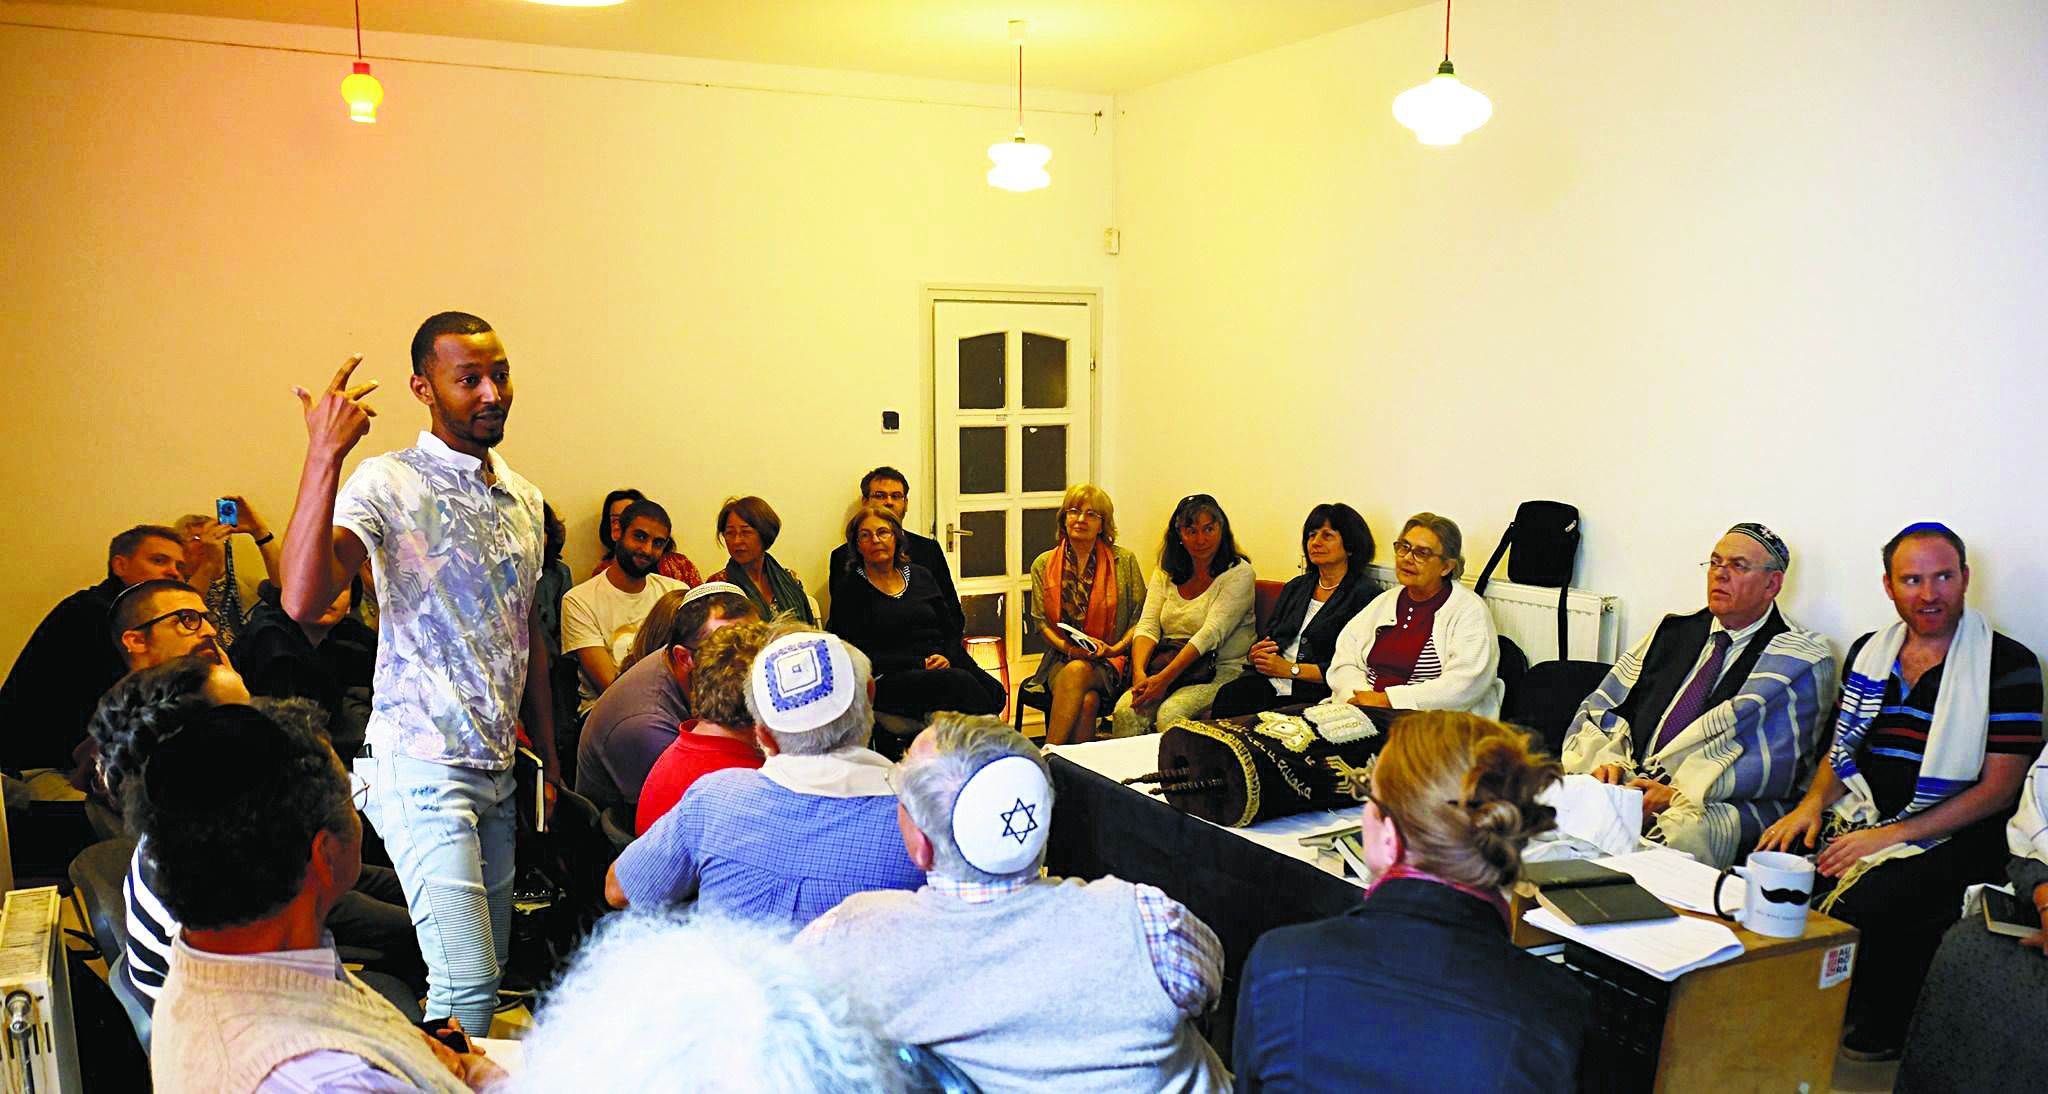 Welcoming the Stranger: Mussa Kilam, an Eritrean immigrant, tells his story to listeners at a 'Jewish Solidarity with Refugees' event at Auróra, a popular Budapest gathering place for young Jews, on October 1.